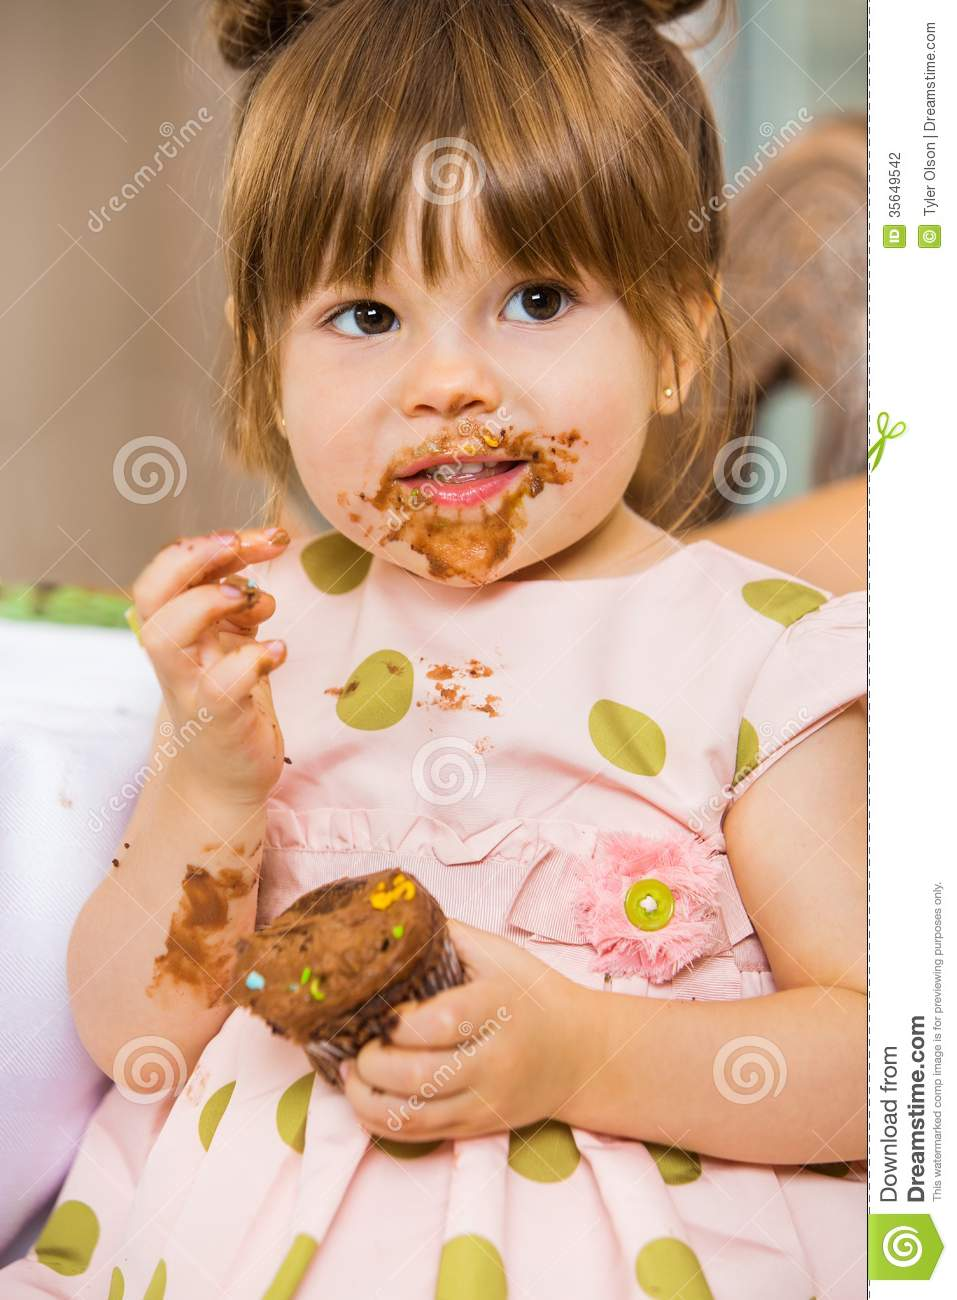 her face on Frosting